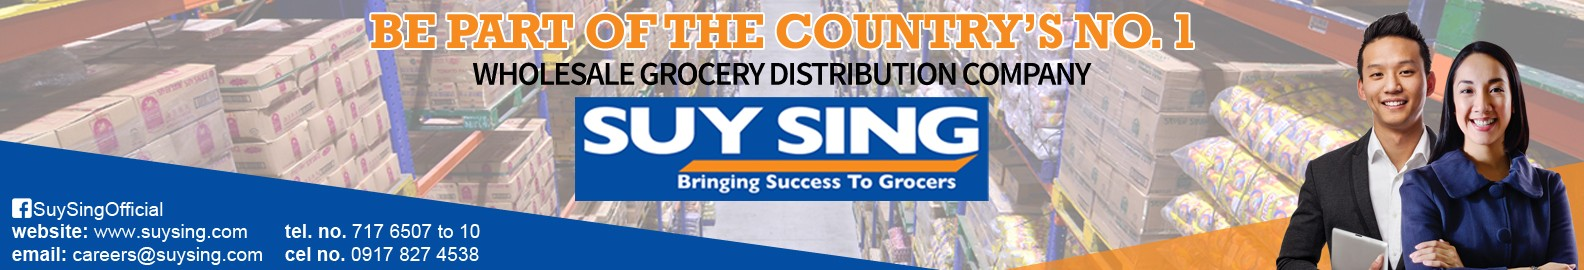 Suy Sing Commercial Corporation | LinkedIn